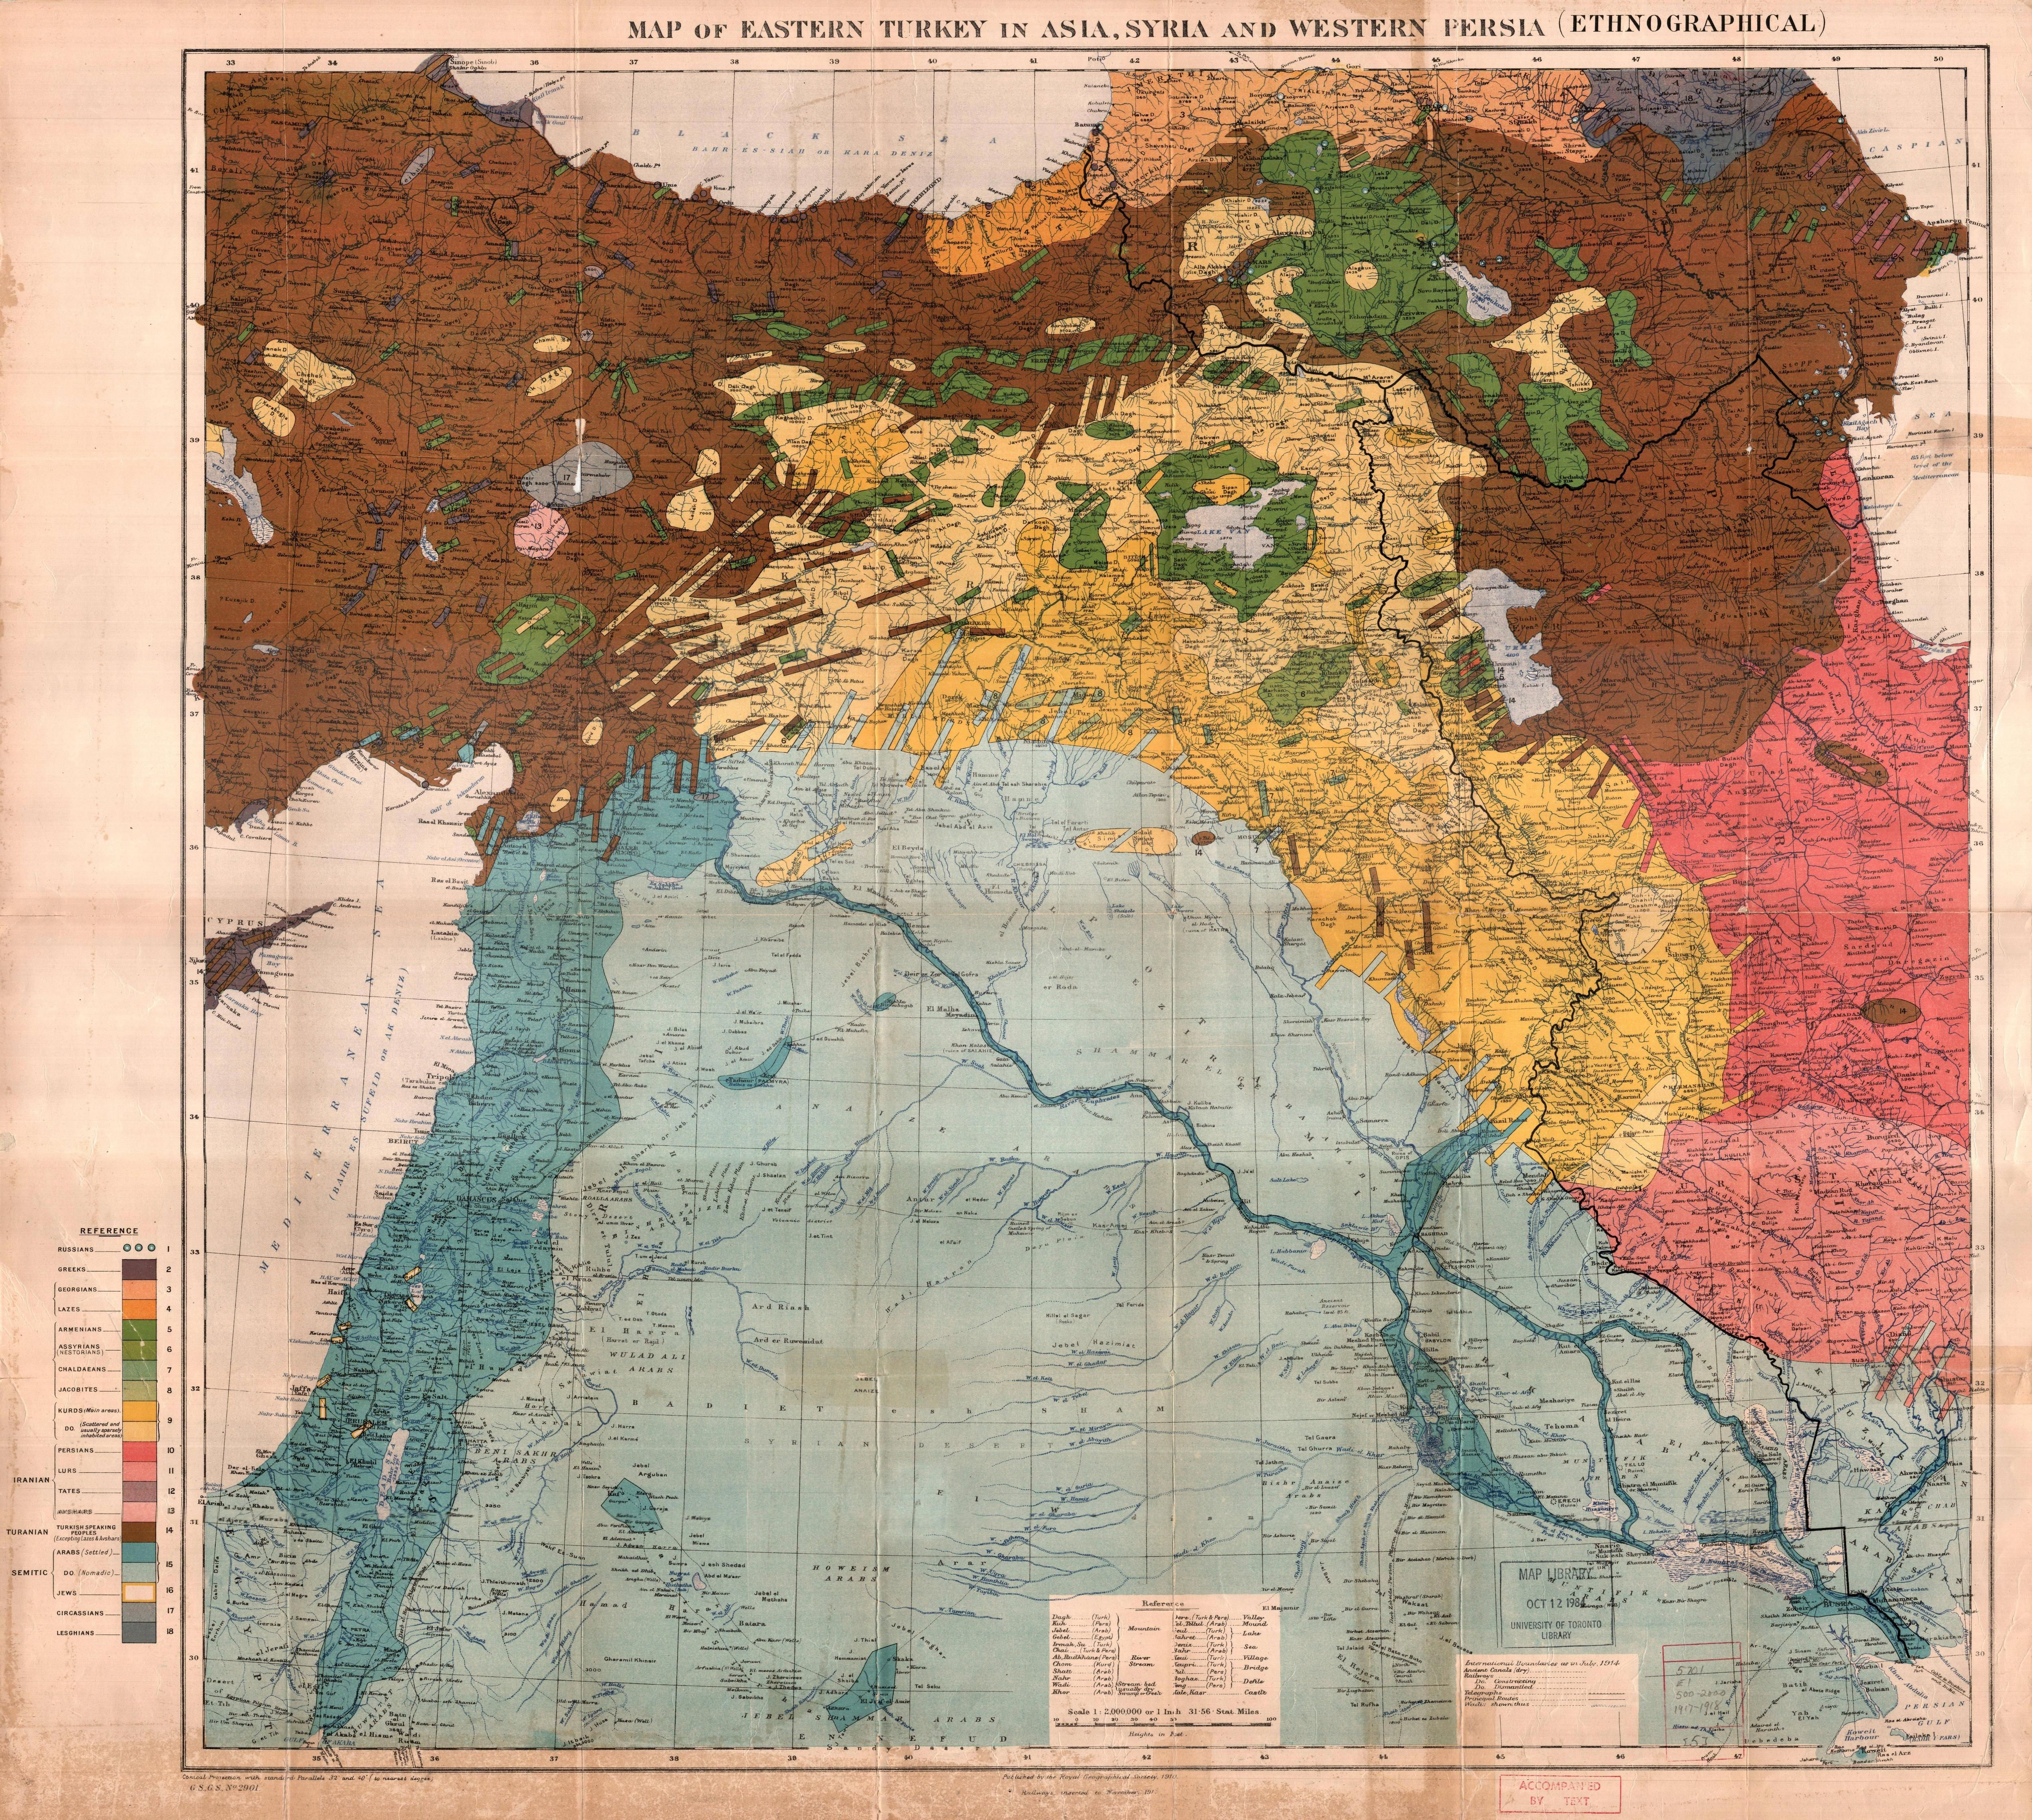 Ethnographic map of eastern Turkey in Asia, Syria and